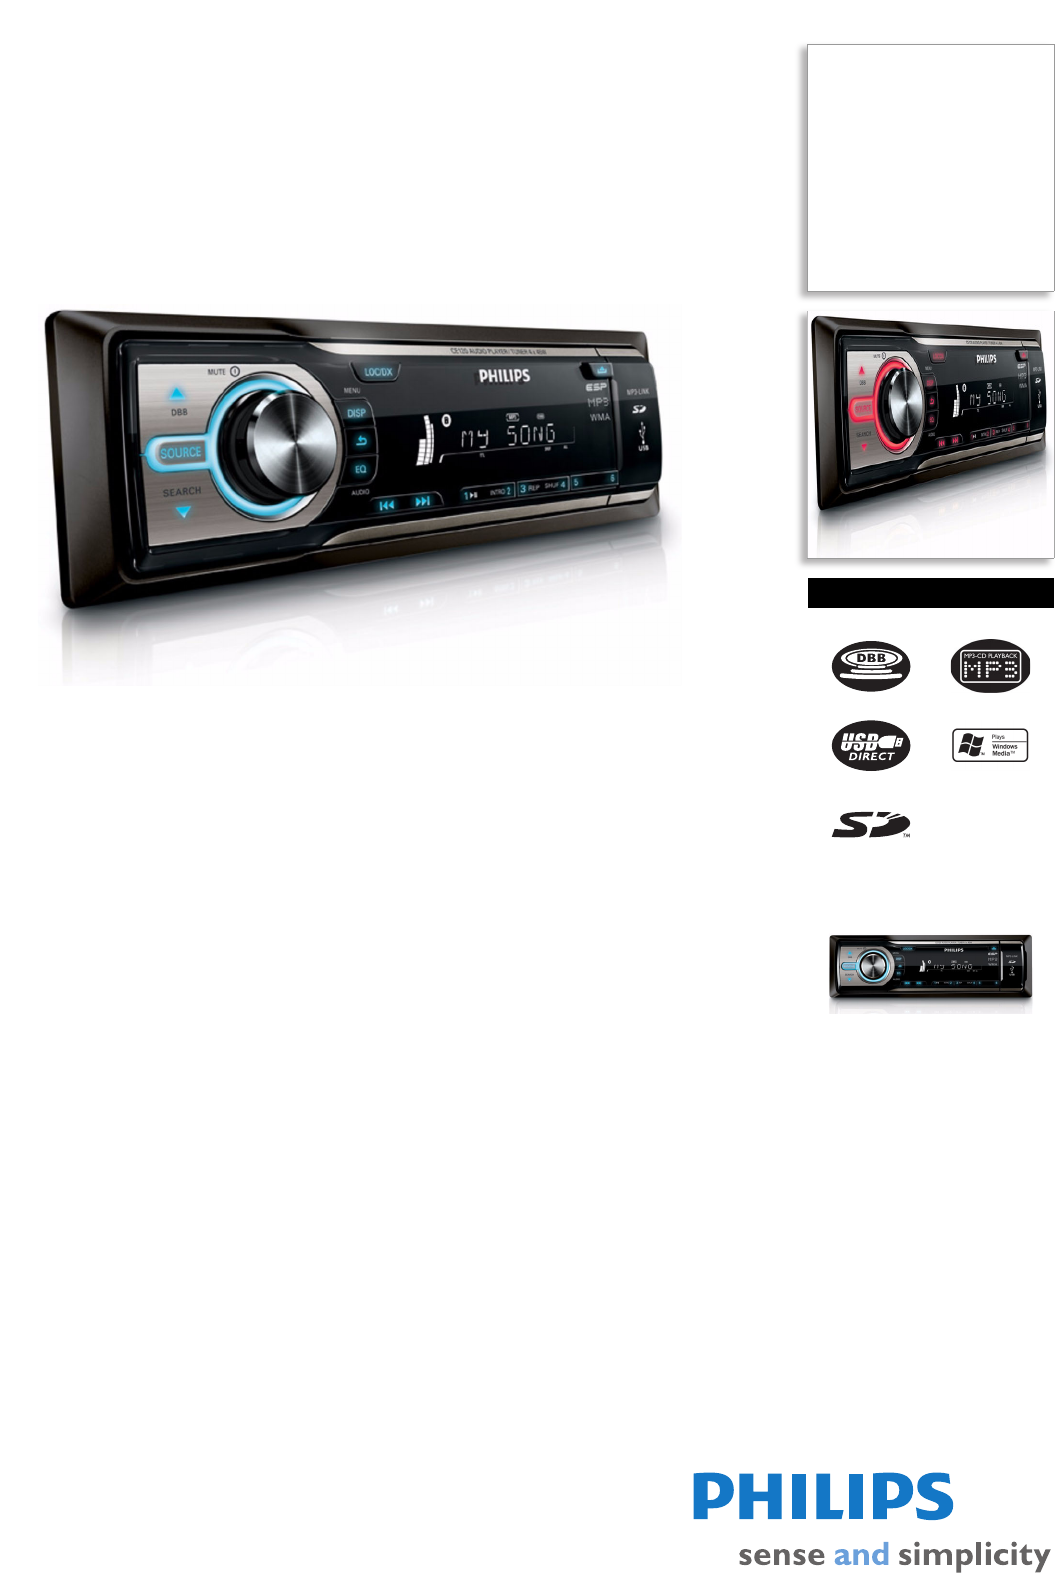 philips car stereo system ce120 user guide manualsonline com rh caraudio manualsonline com Philips User Guides Speaker Bt7900 Philips Flat TV Manual